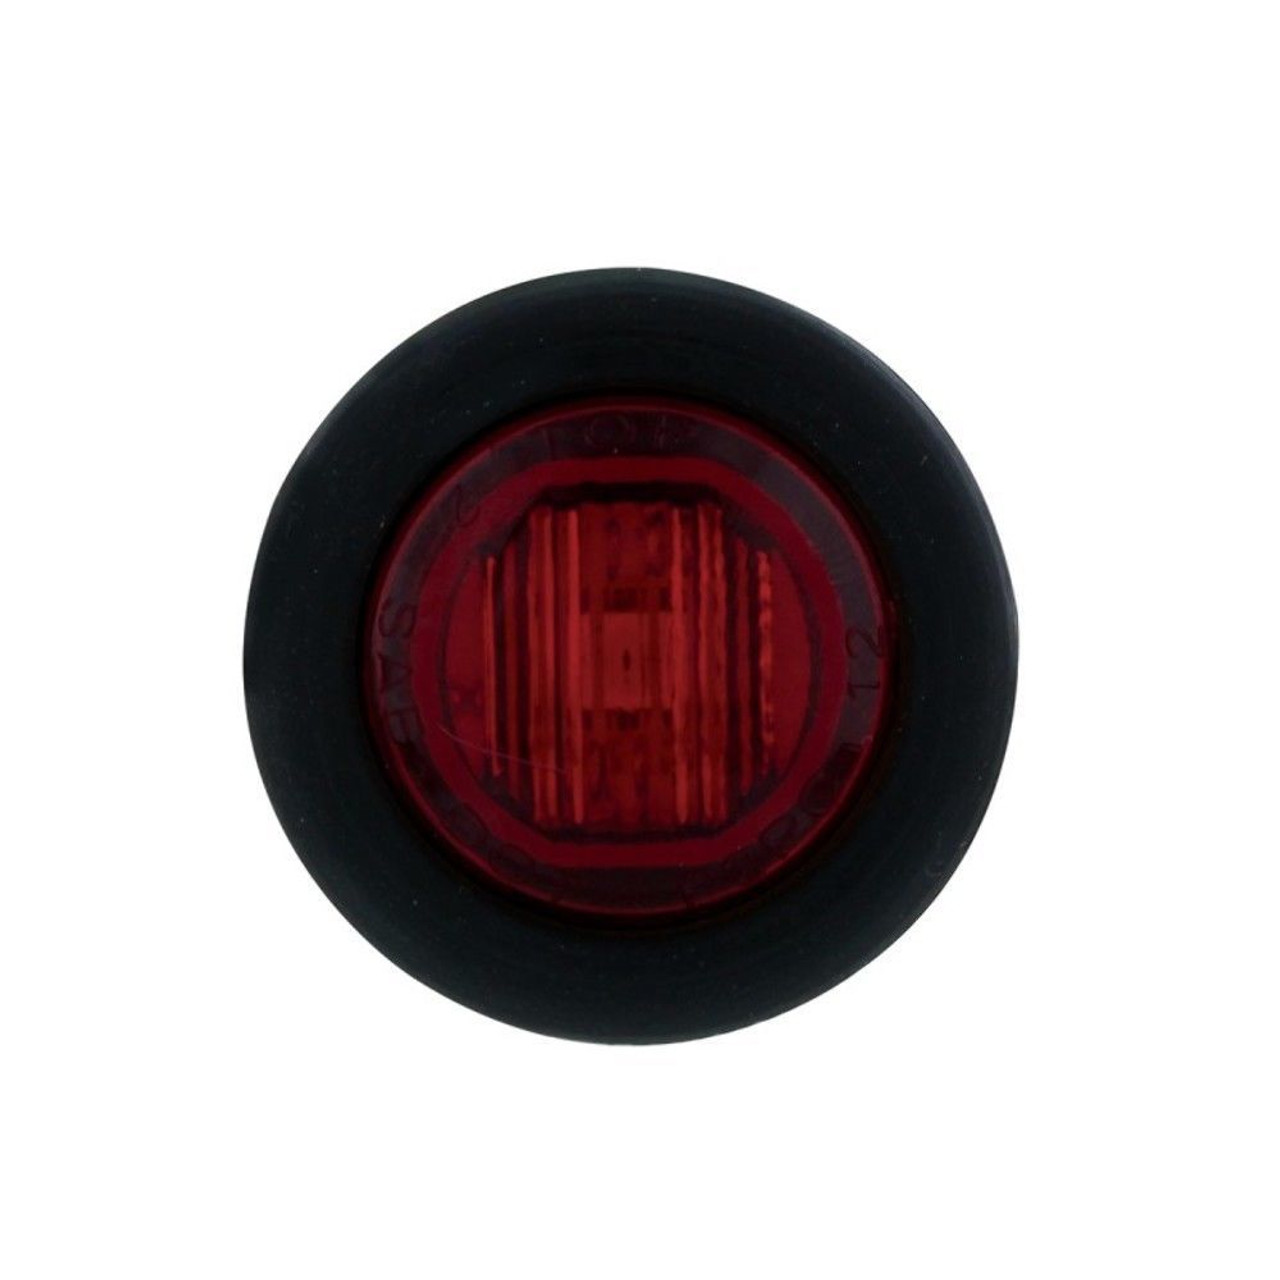 1 SMD LED Mini Clearance/Marker Light - Red LED/Red Lens - Truck Trailer Jeep